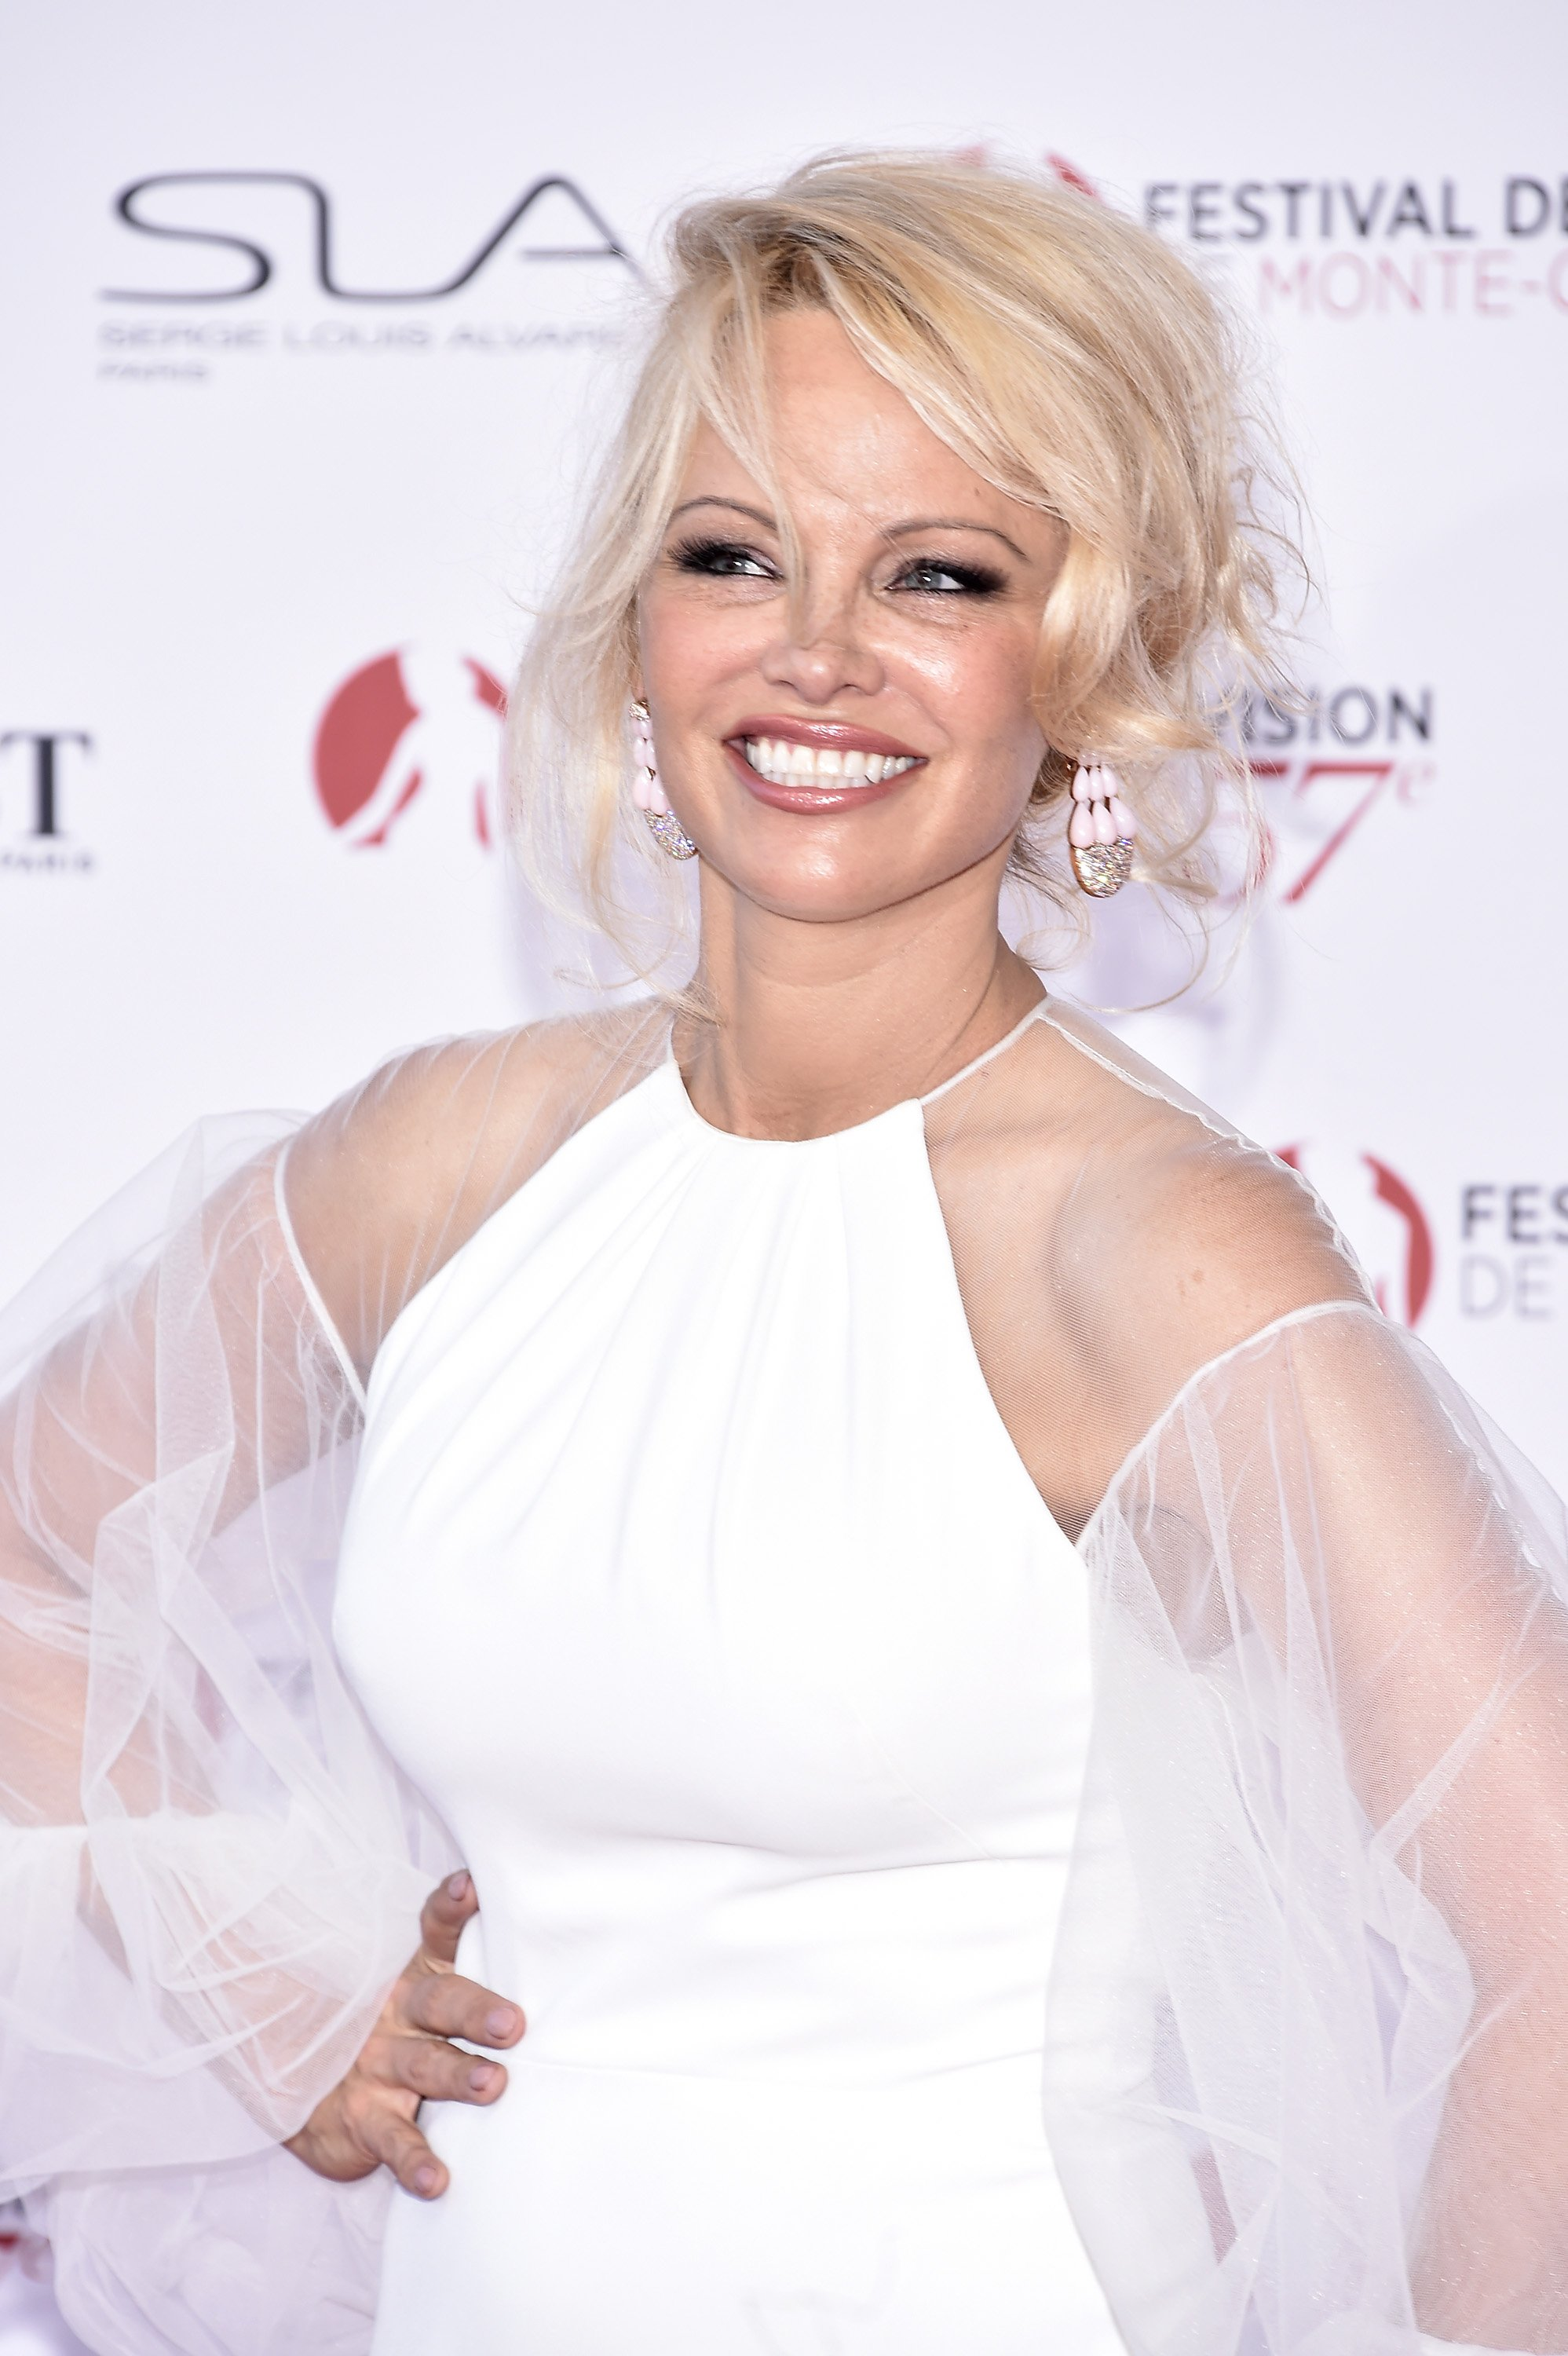 Pamela Anderson attends the 57th Monte Carlo TV Festival Opening Ceremony on June 16, 2017 in Monte-Carlo, Monaco | Photo: Getty Images